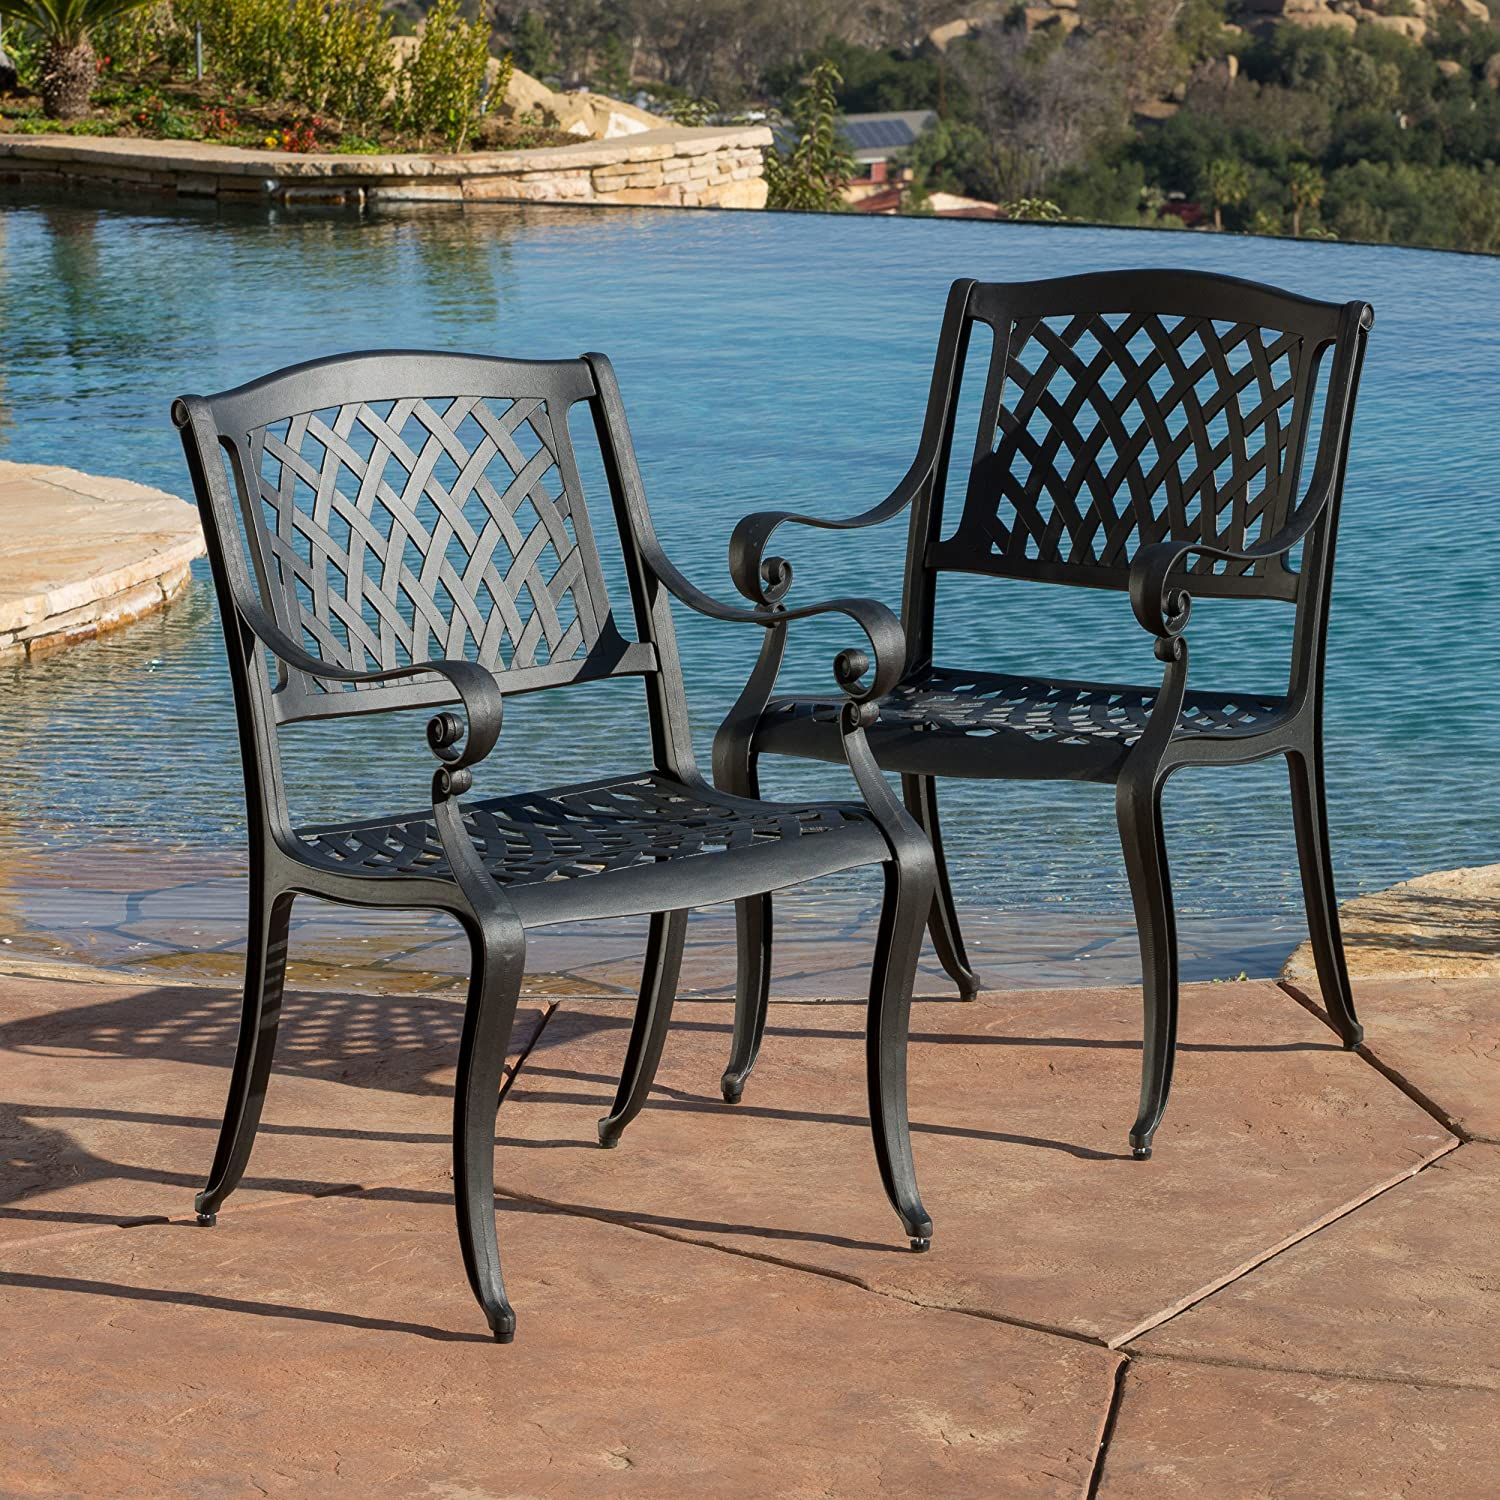 Marvelous Amazon.com: Marietta Outdoor Cast Aluminum Dining Chairs (Set Of 2):  Kitchen U0026 Dining Part 20